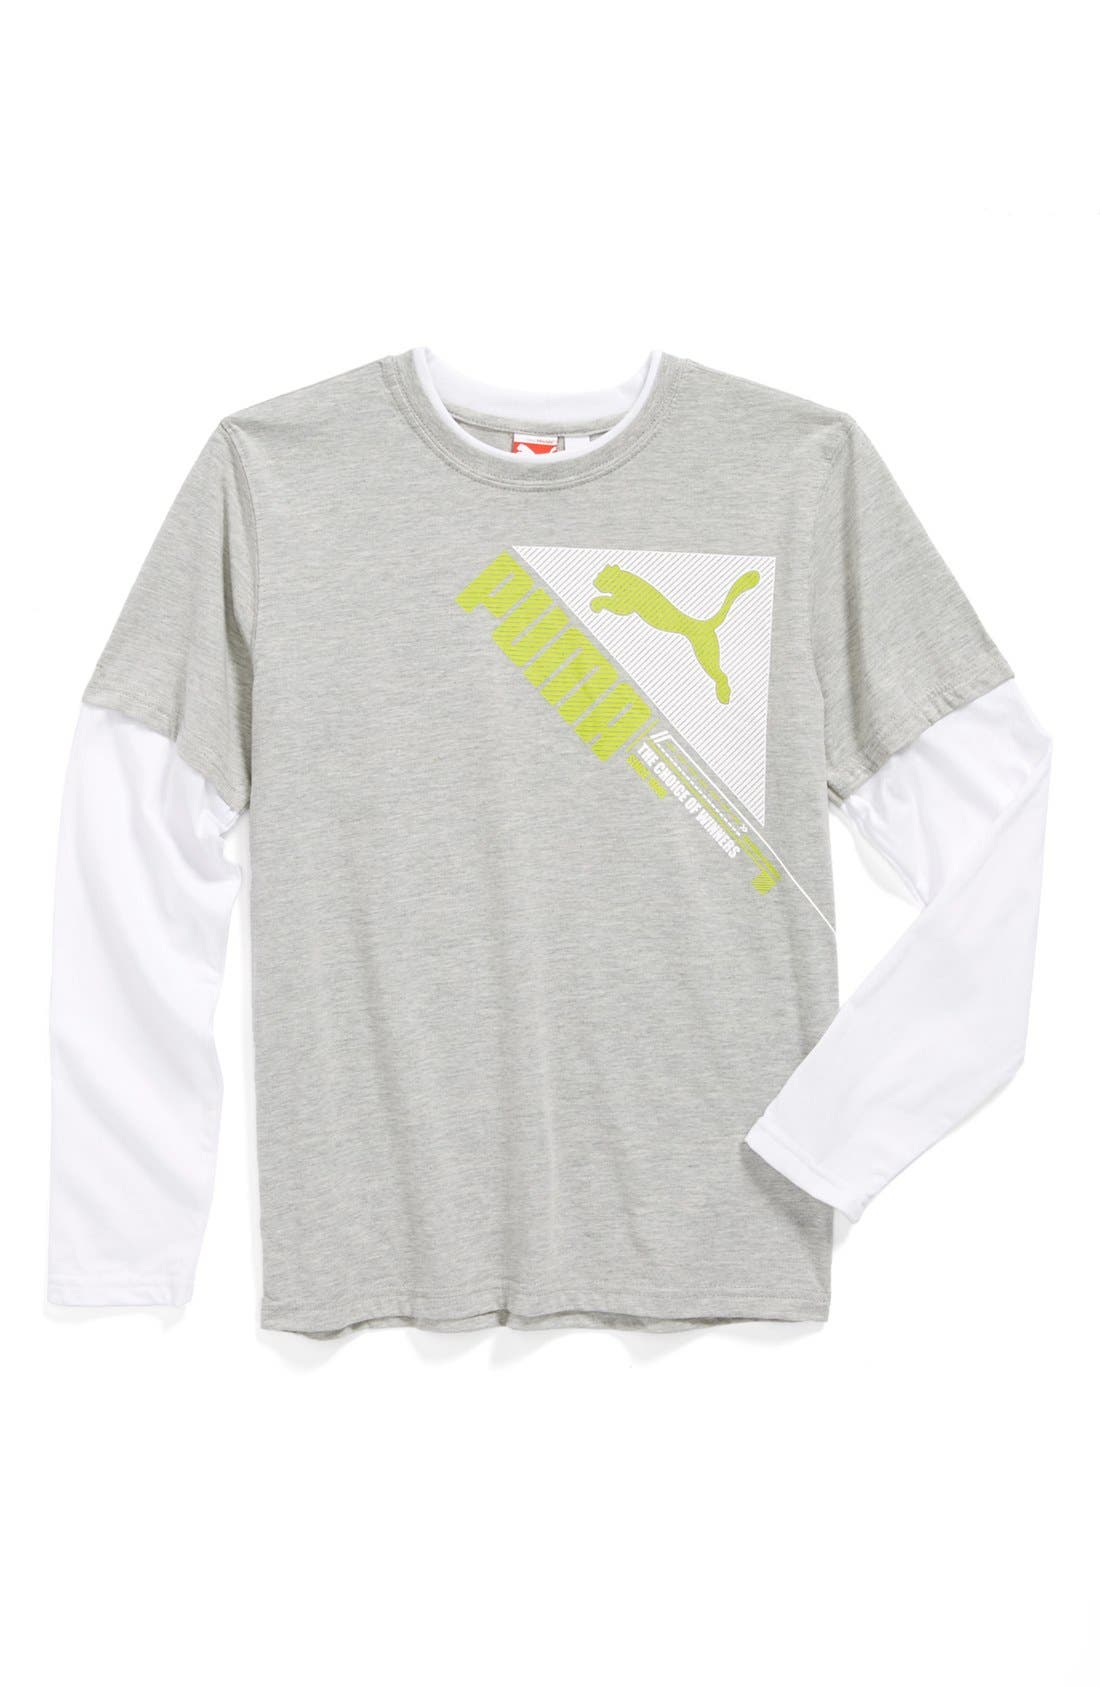 Main Image - PUMA 'Winners' T-Shirt (Little Boys)